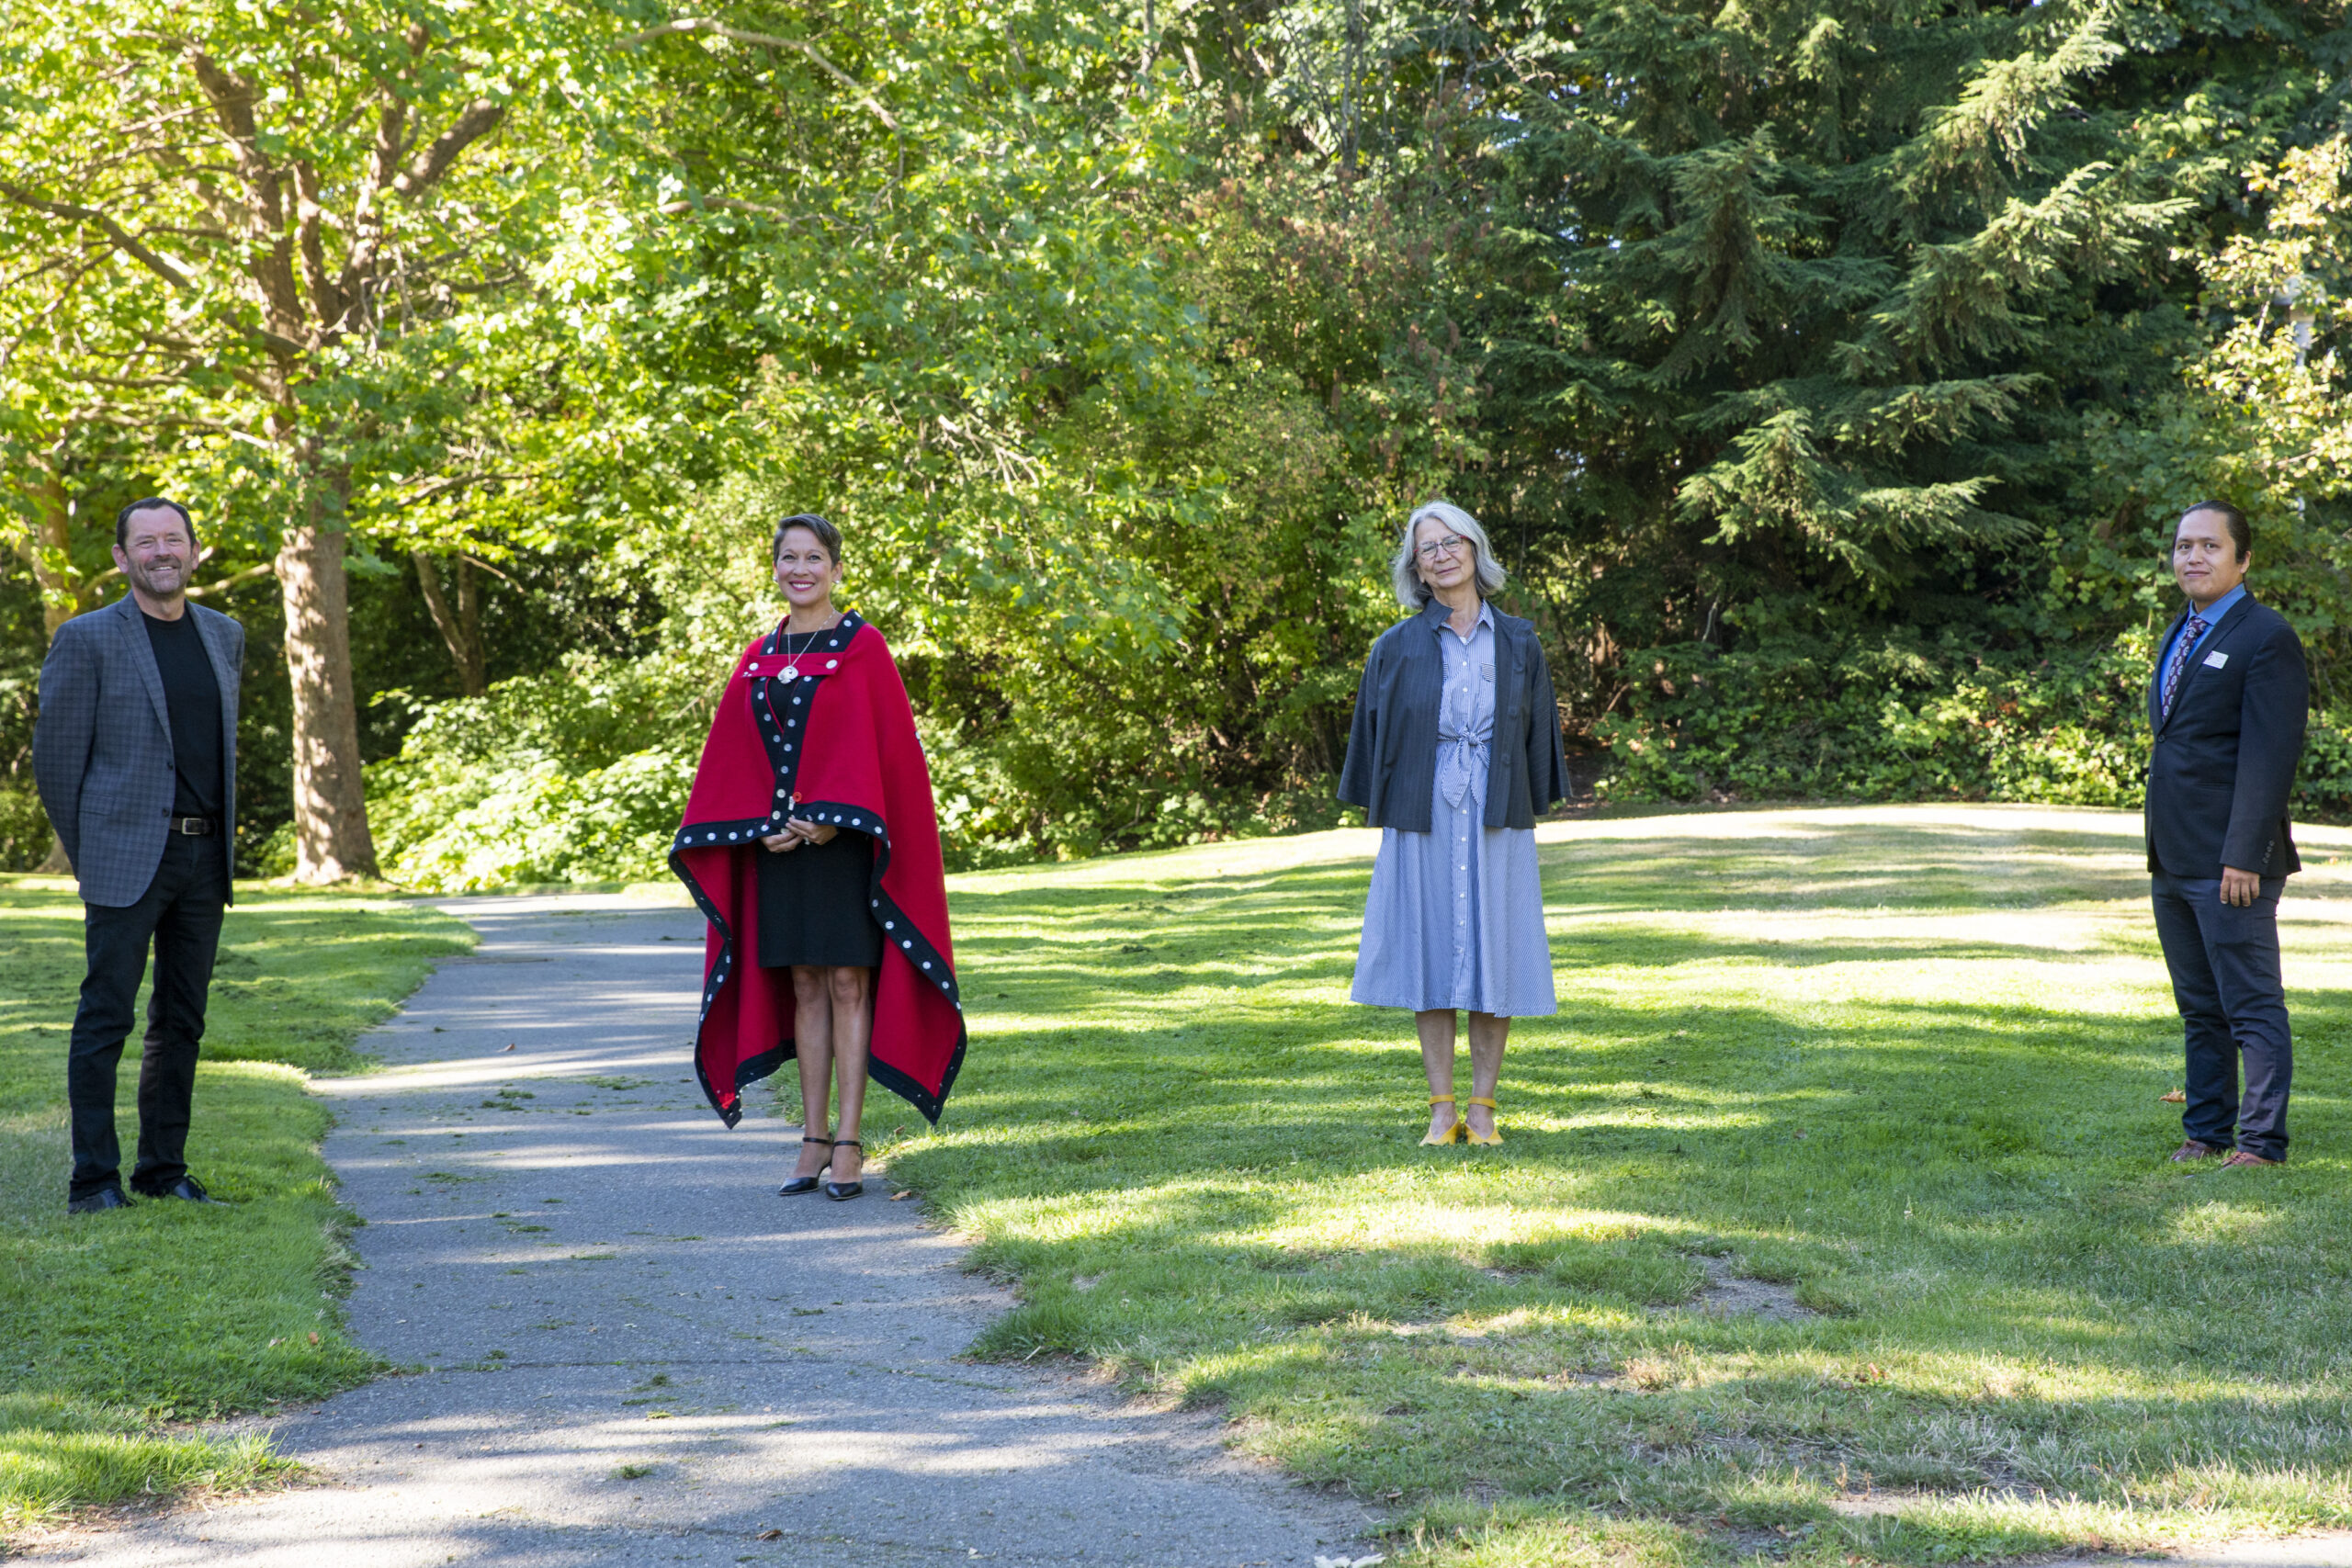 UVic Law to build a National Centre for Indigenous Laws